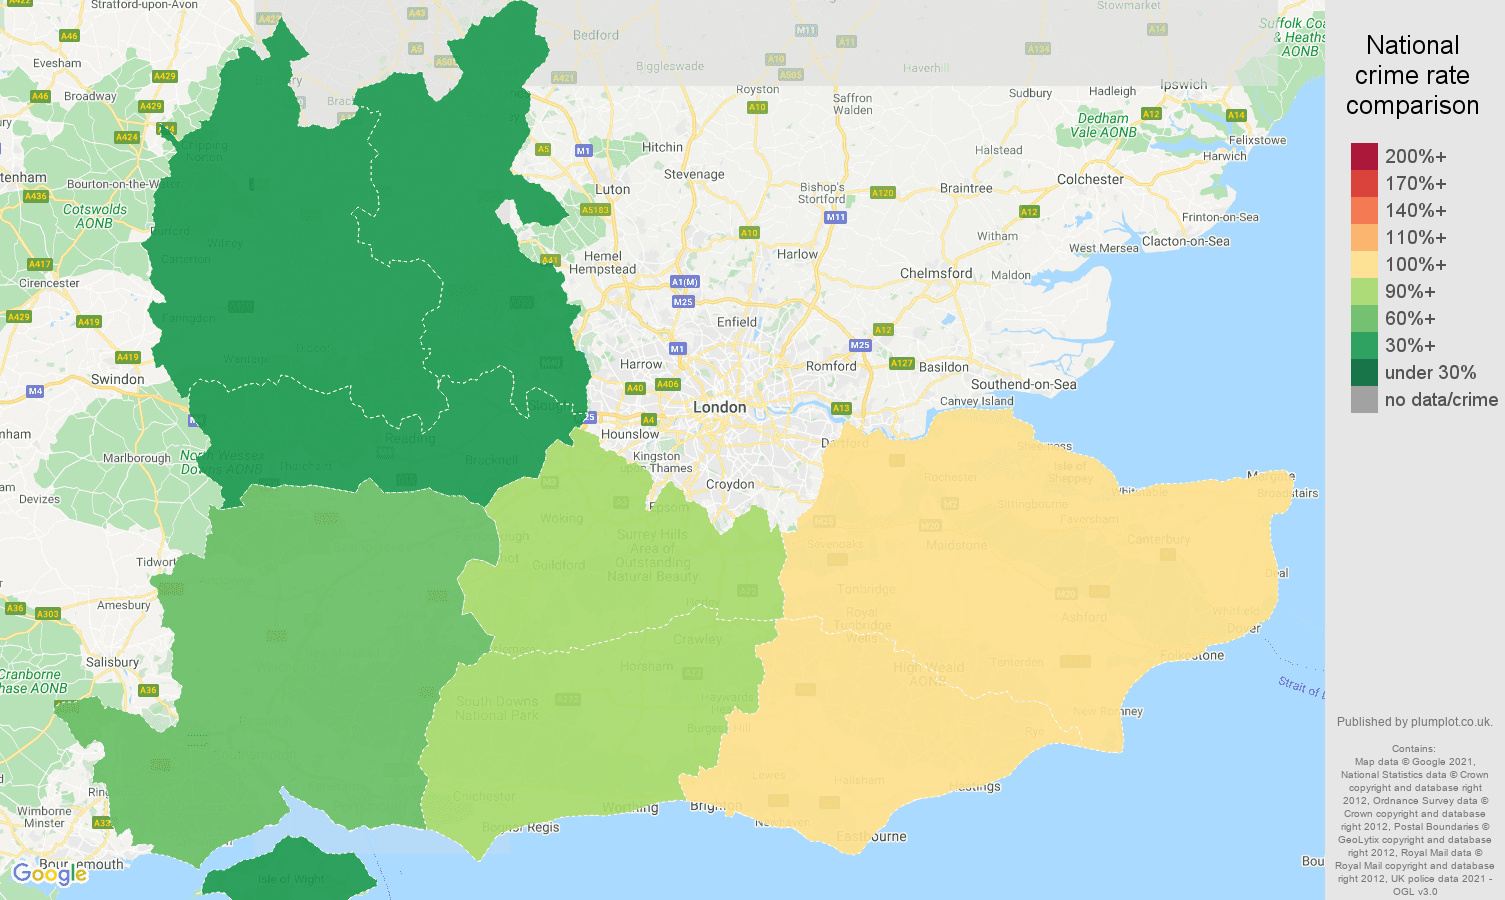 South East antisocial behaviour crime rate comparison map